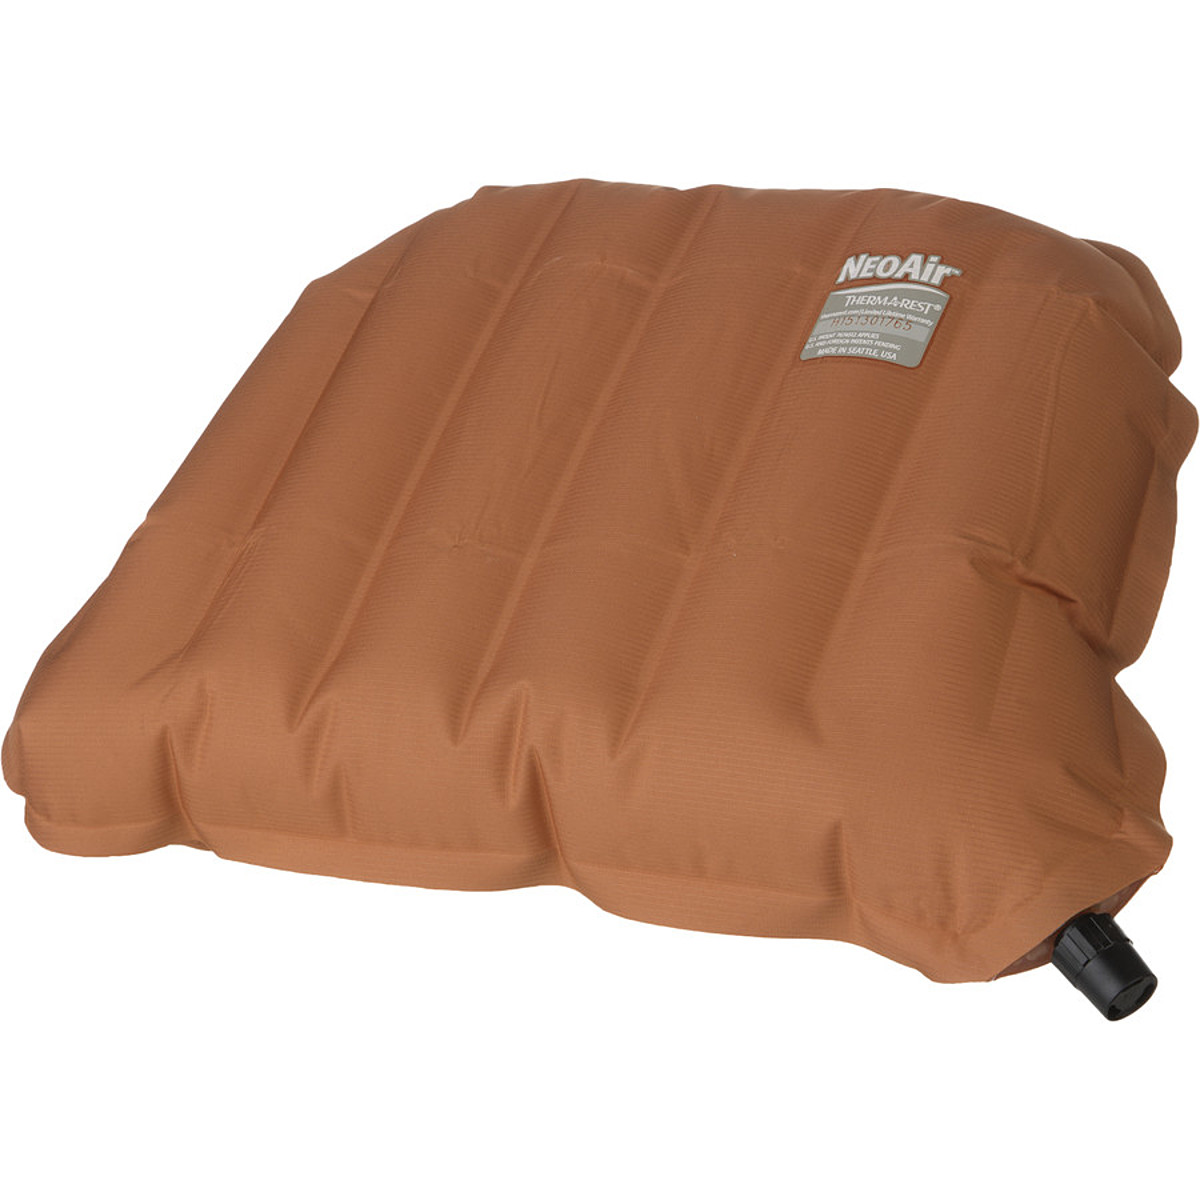 treelinebackpacker therm rest review pillow thermarest compressible a